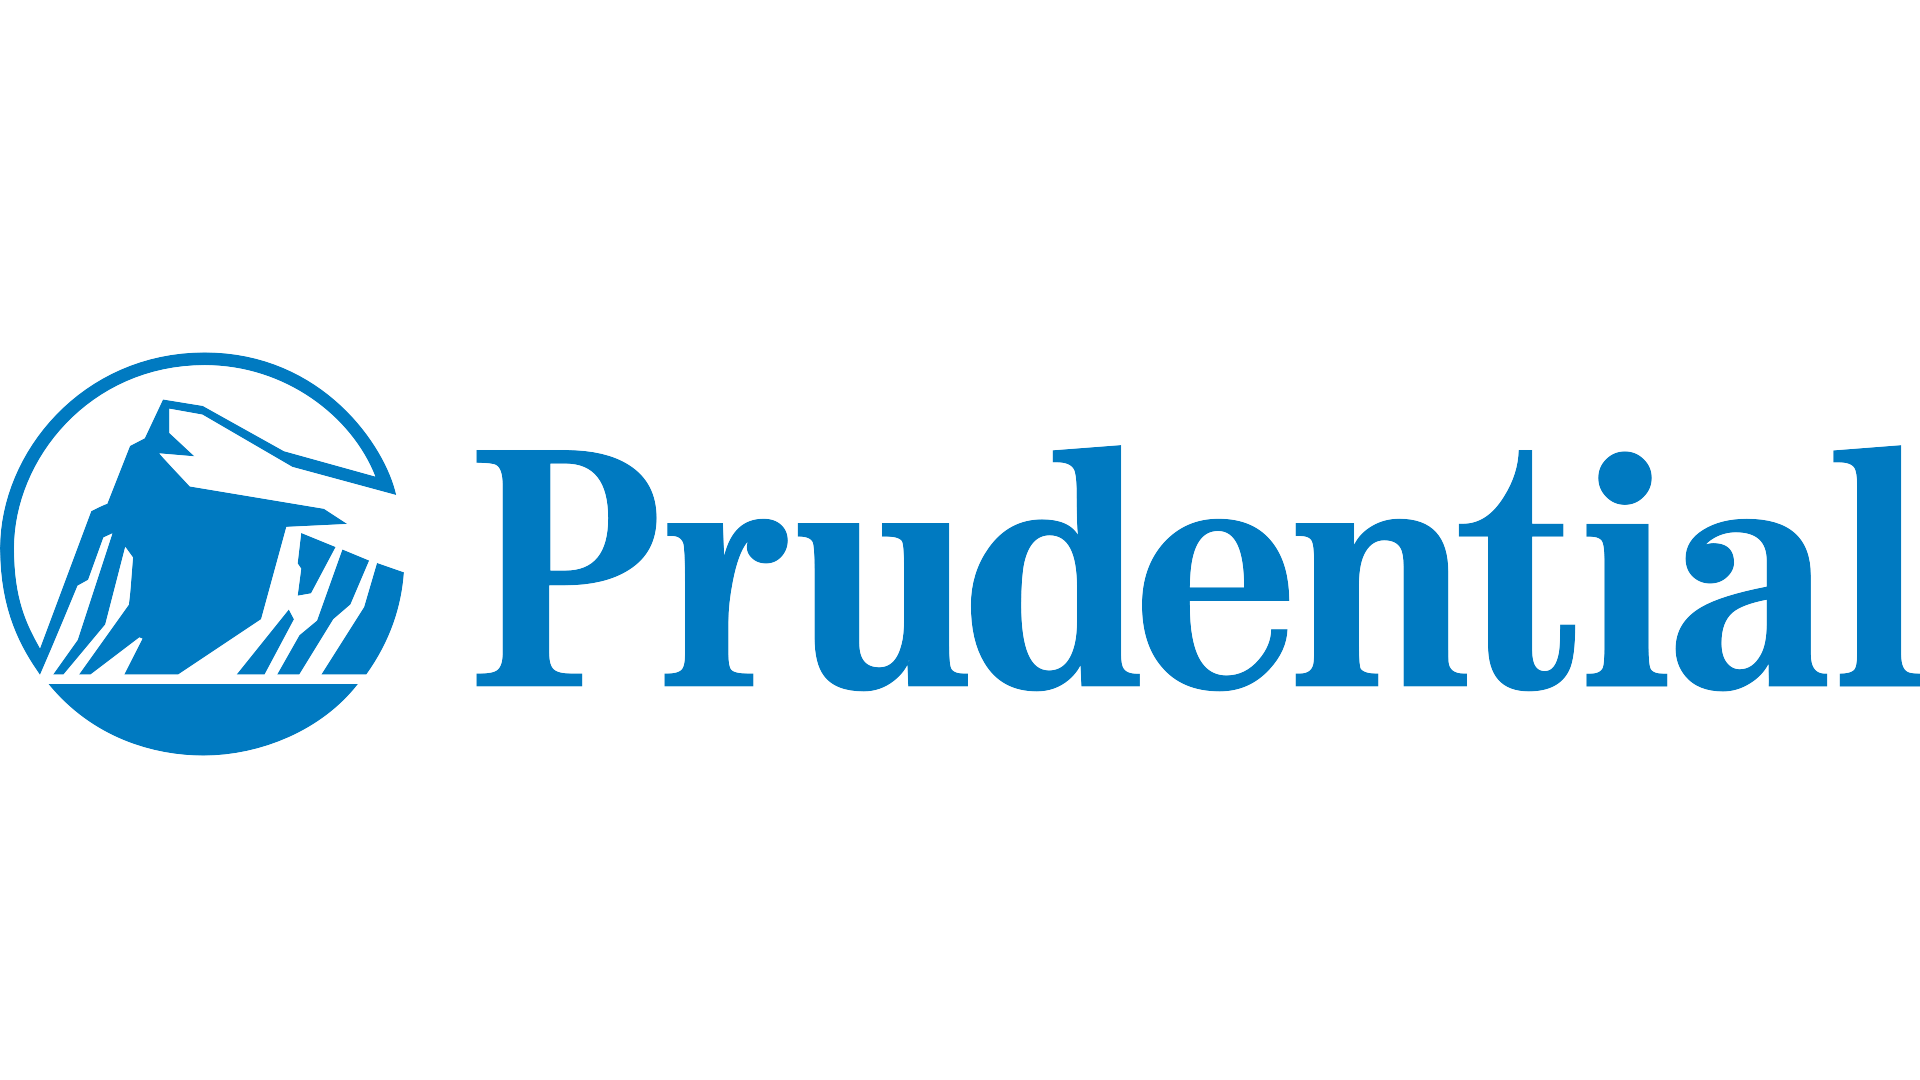 Watch the job video below to learn more about the career opening Finance at Prudential in Hartford,   CT